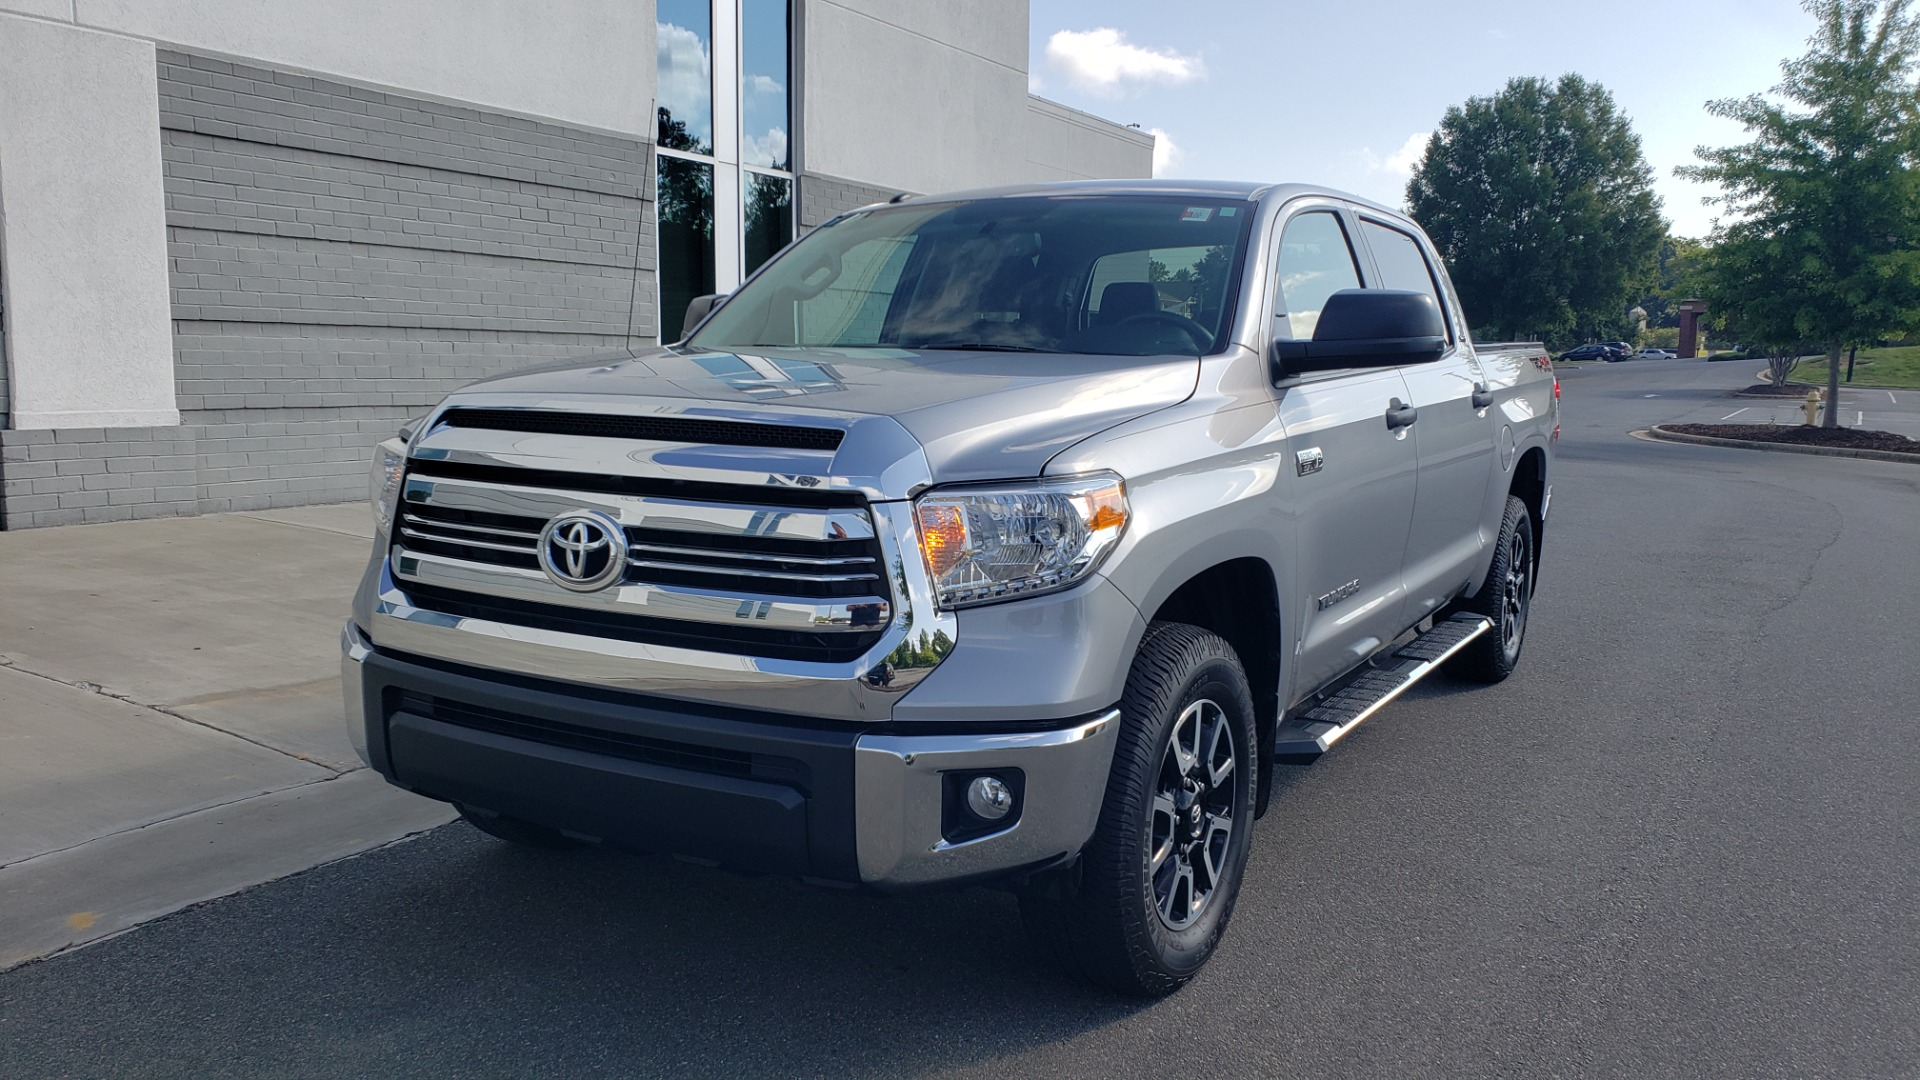 Used 2017 Toyota TUNDRA 4WD SR5 CREWMAX / 5.7L V8 / 6-SPD AUTO / NAV / REARVIEW for sale $44,395 at Formula Imports in Charlotte NC 28227 3